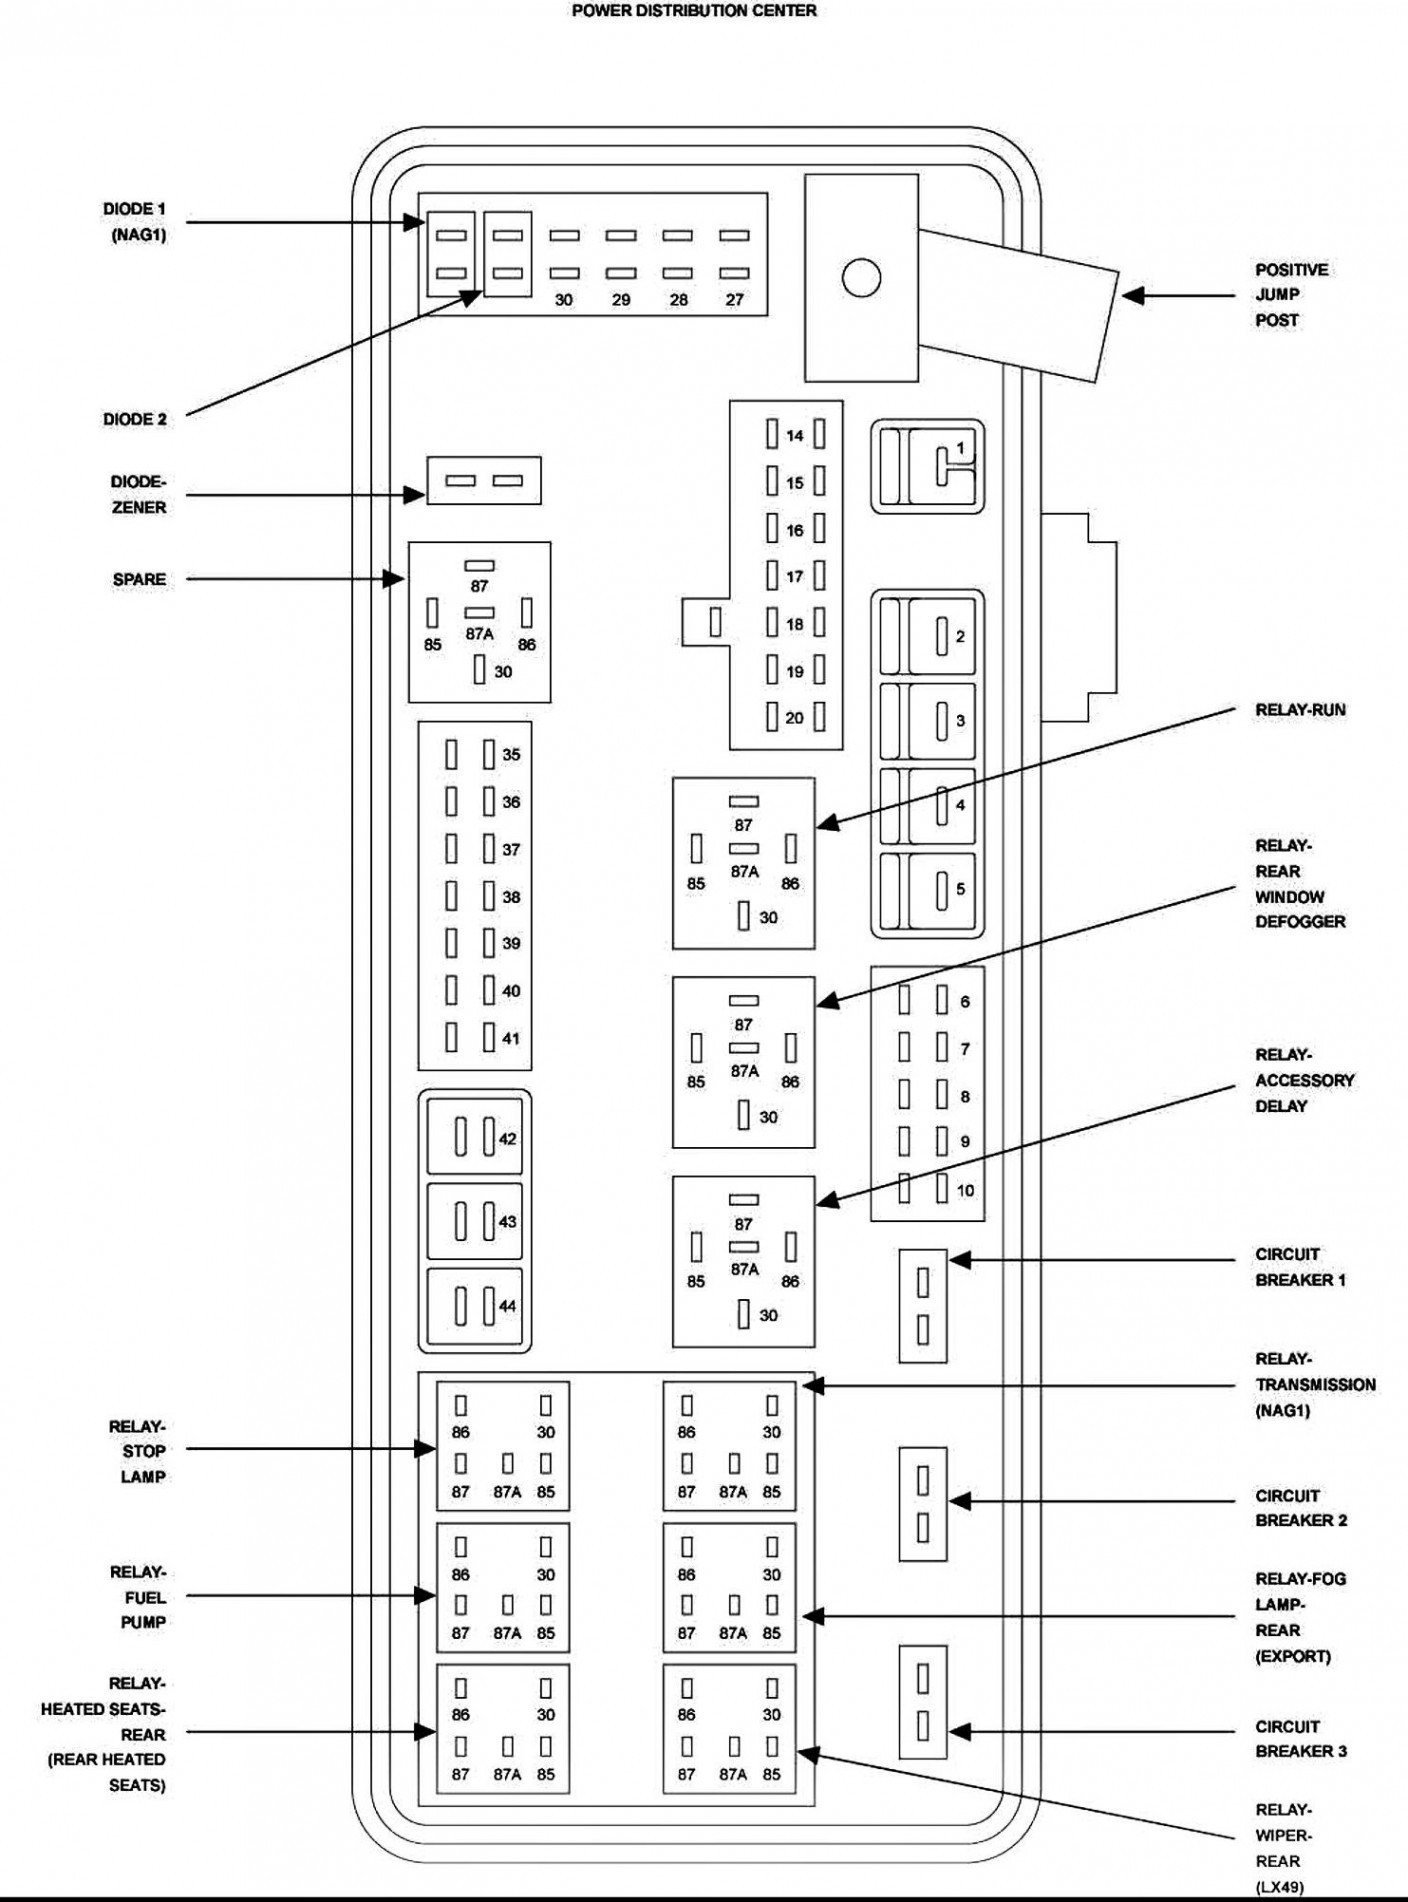 2008 Chrysler Sebring Fuse Box Diagram - exatin.info